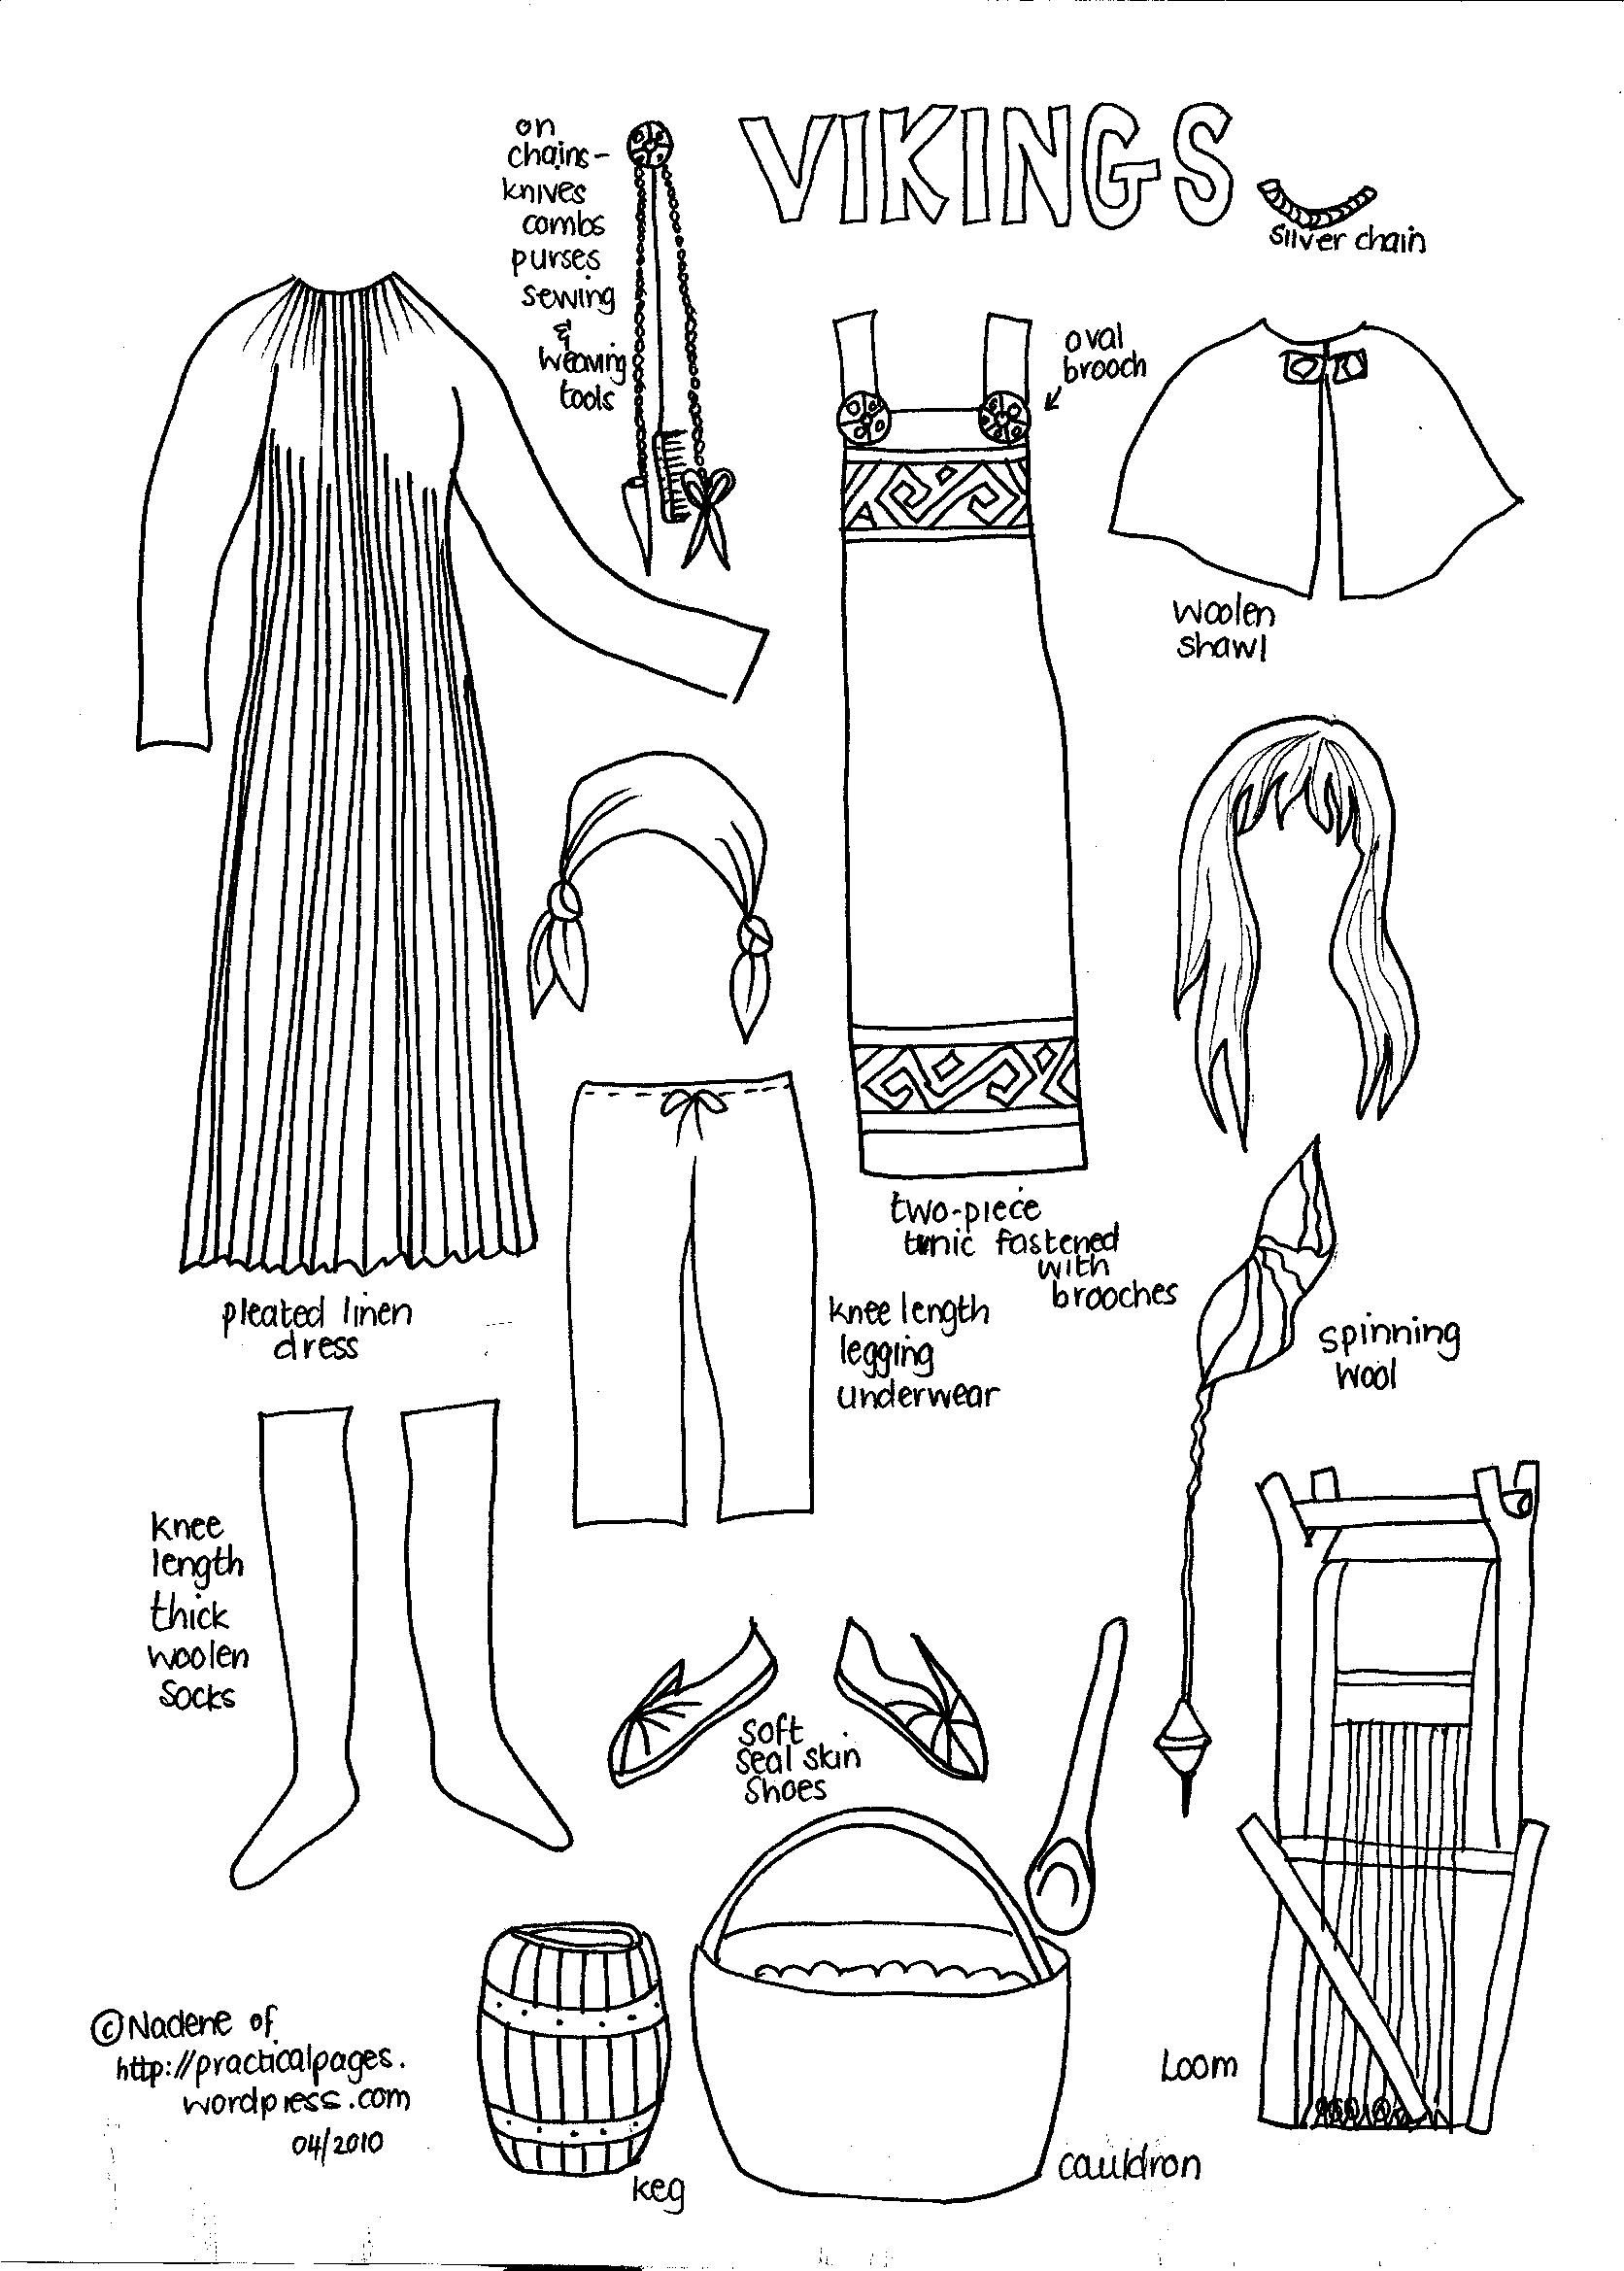 viking clothes | Vikings and Celts | Pinterest | Vikings and Middle